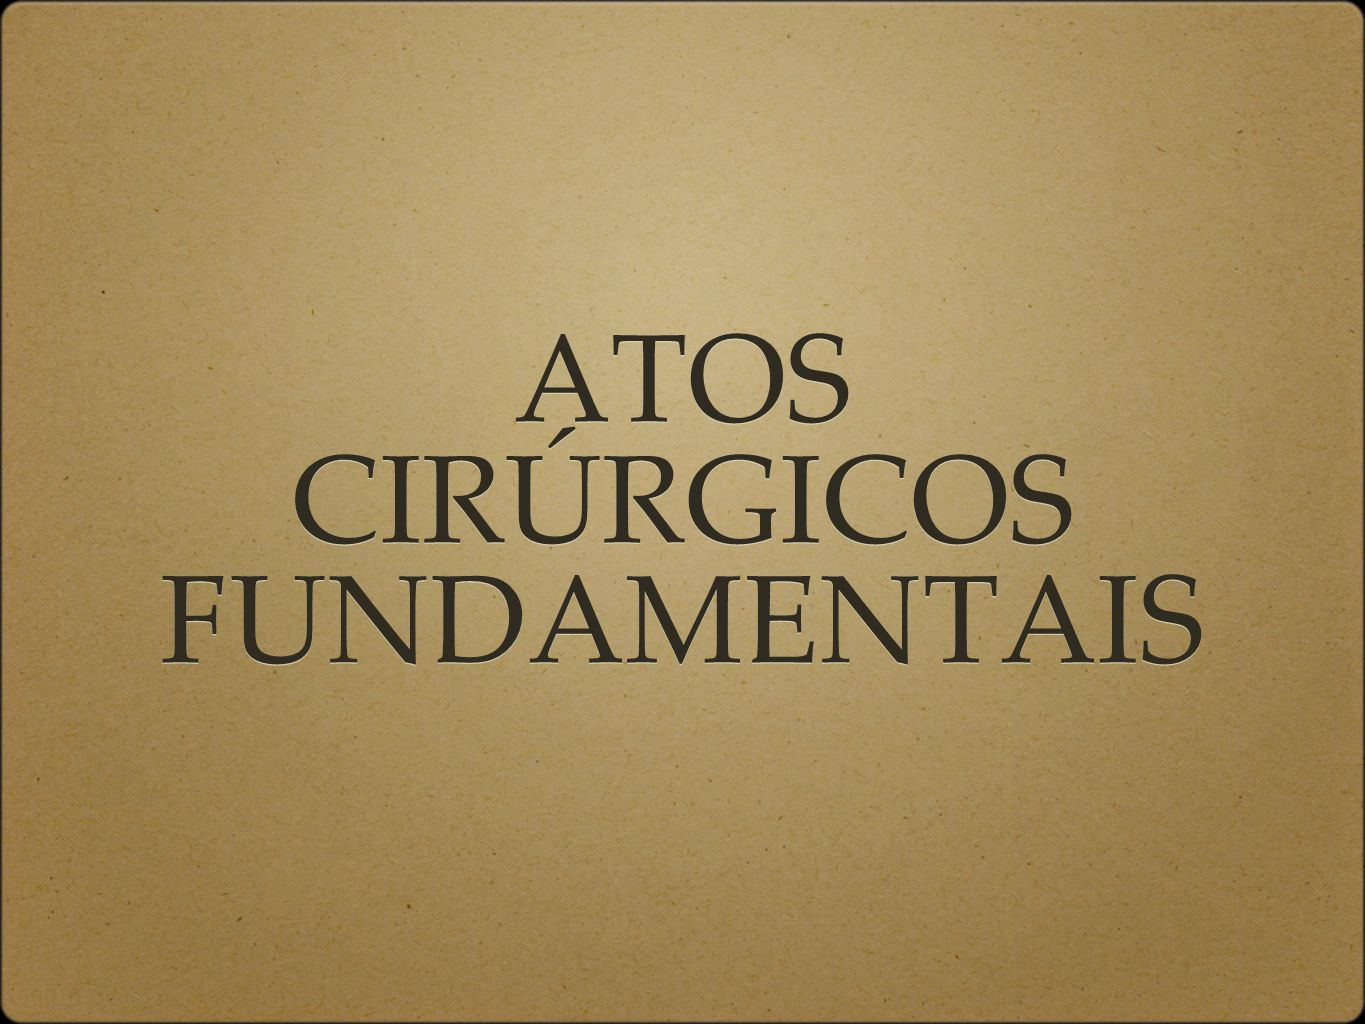 ATOS CIRÚRGICOS FUNDAMENTAIS